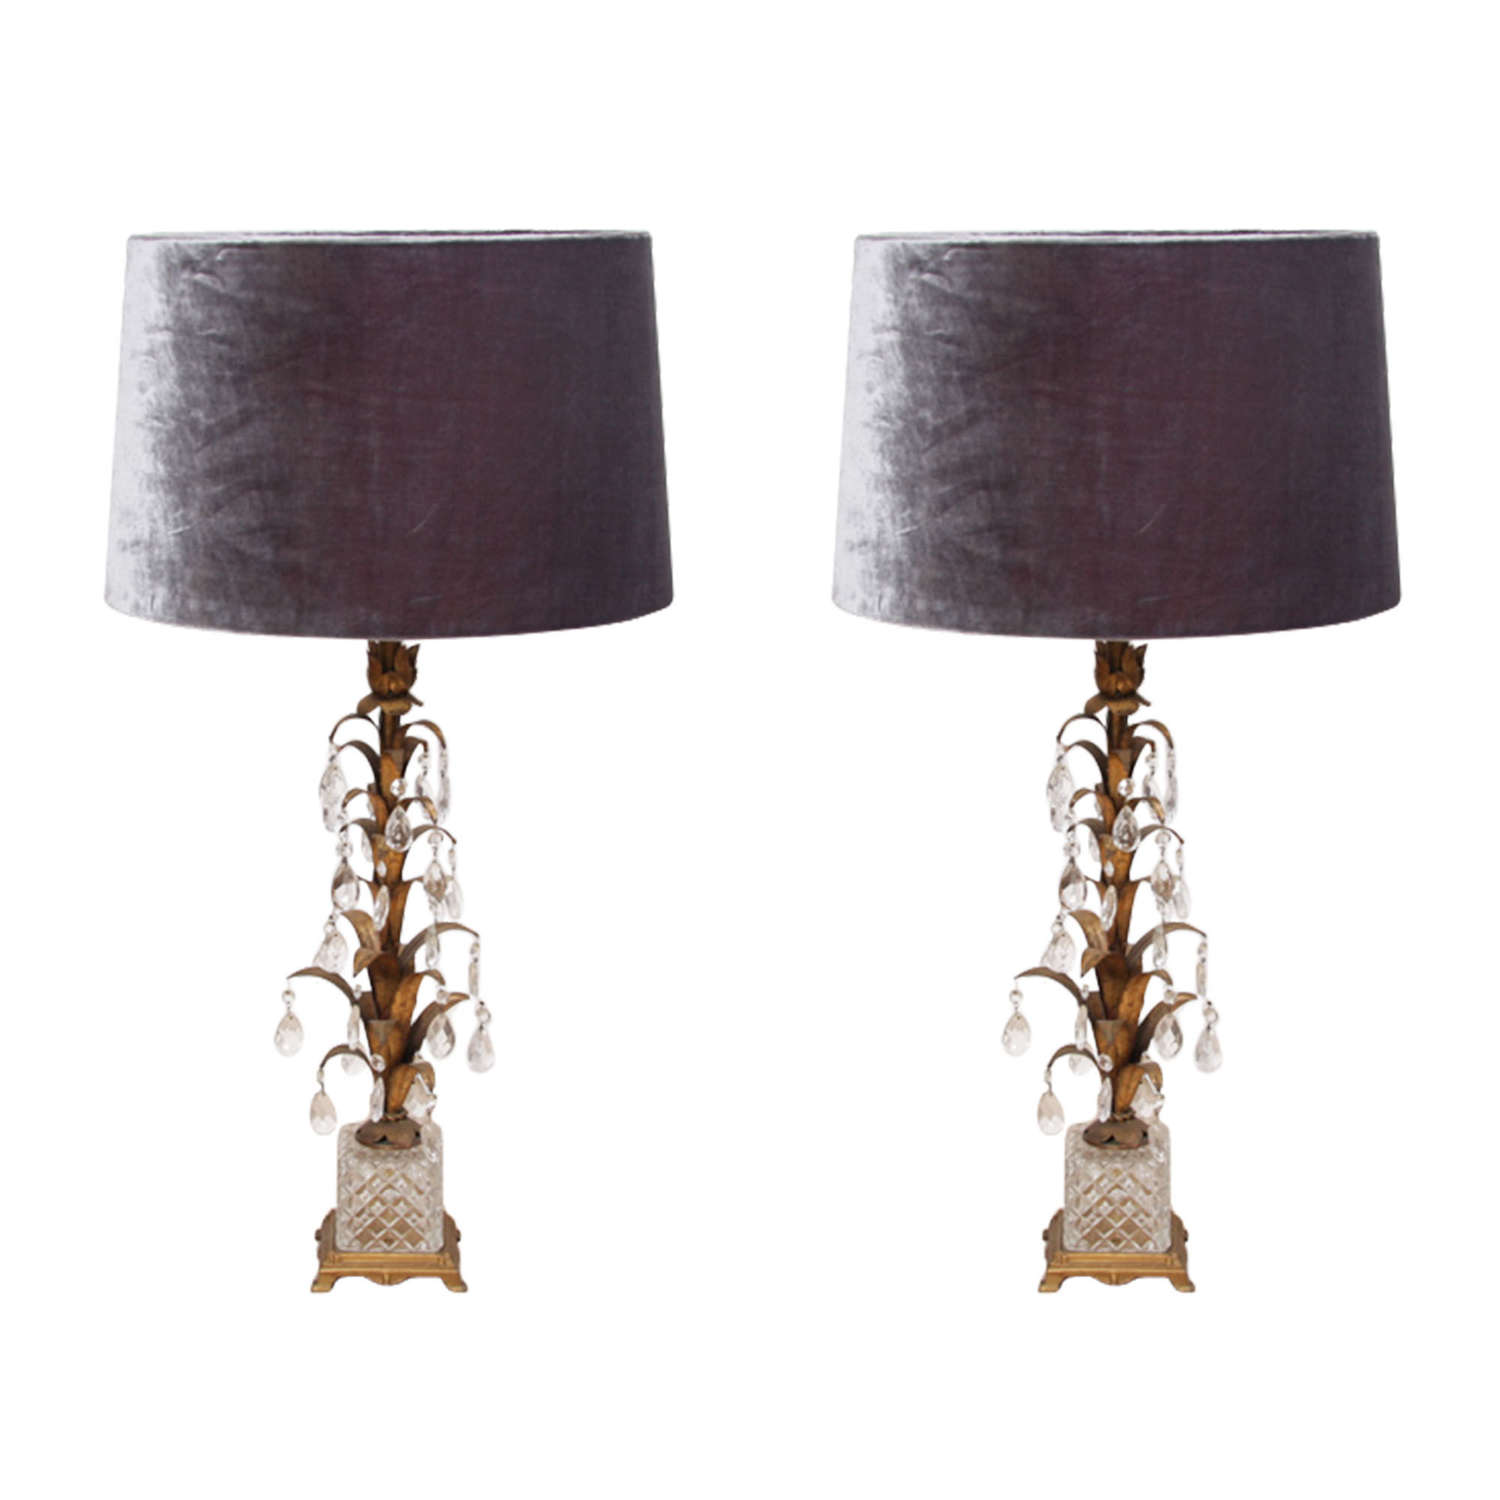 Pair of Italian 1960s Crystal and Tole Metal Table Lamps